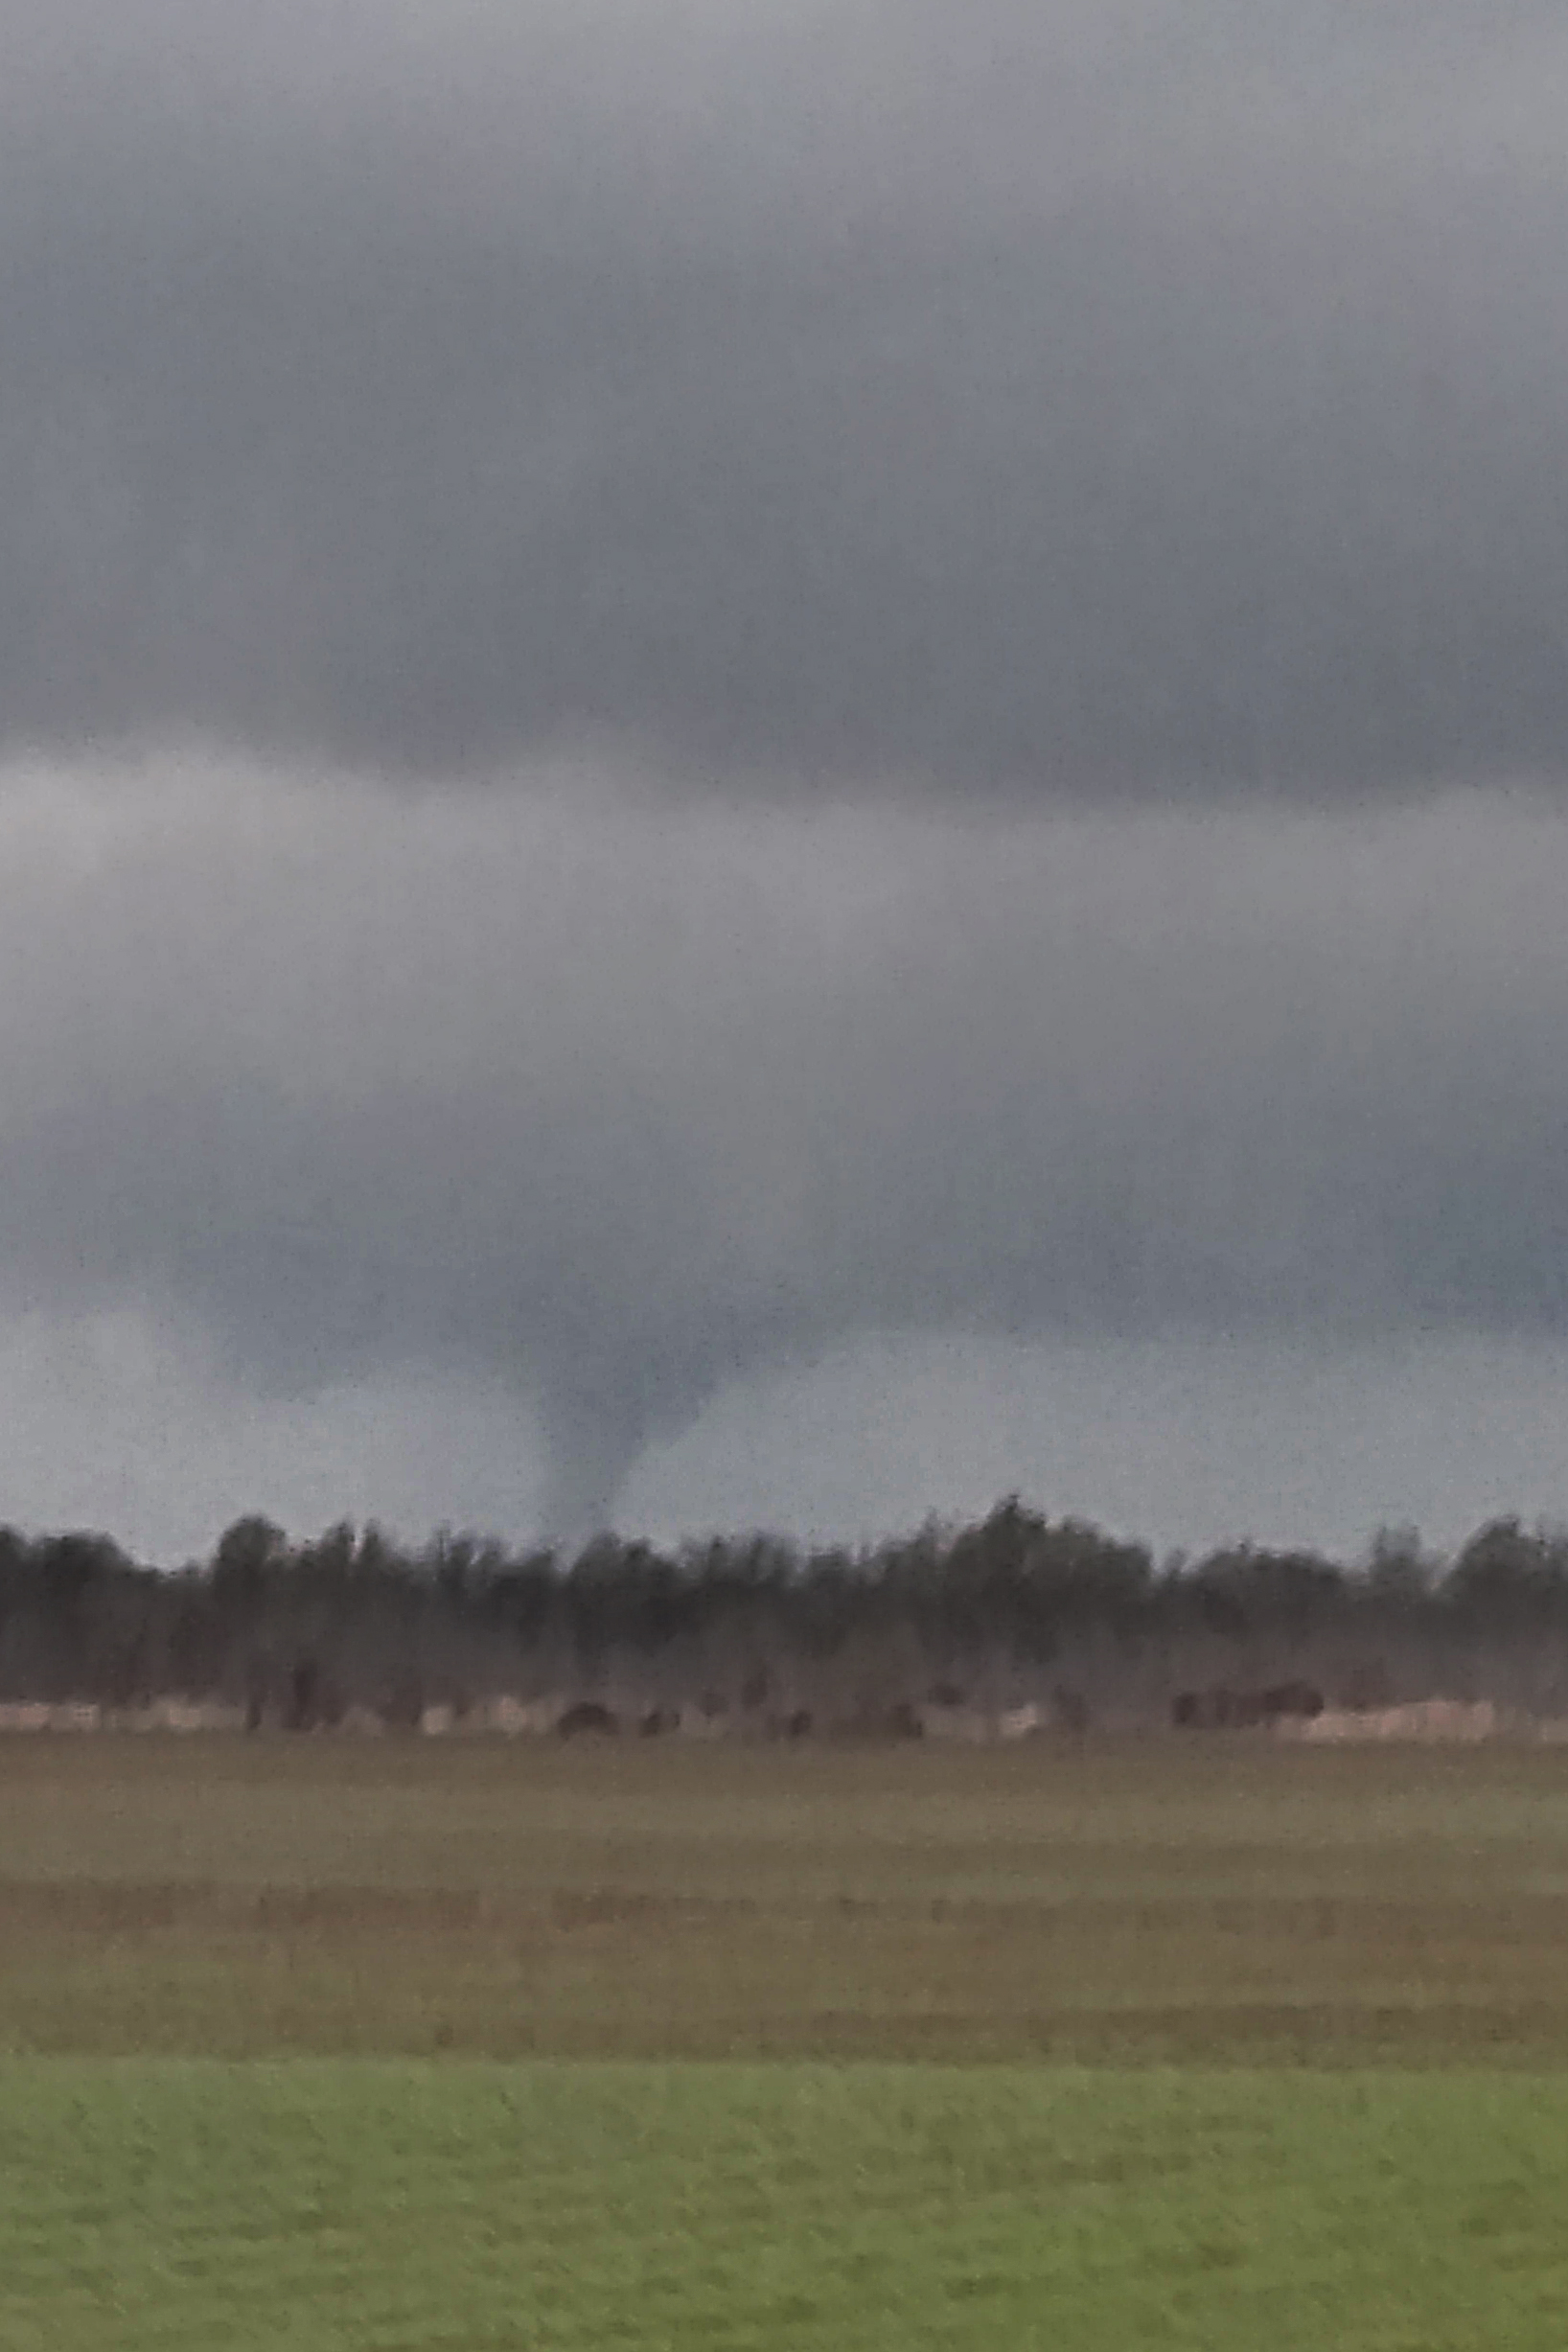 3:00:38pm CST first visual of tornado.